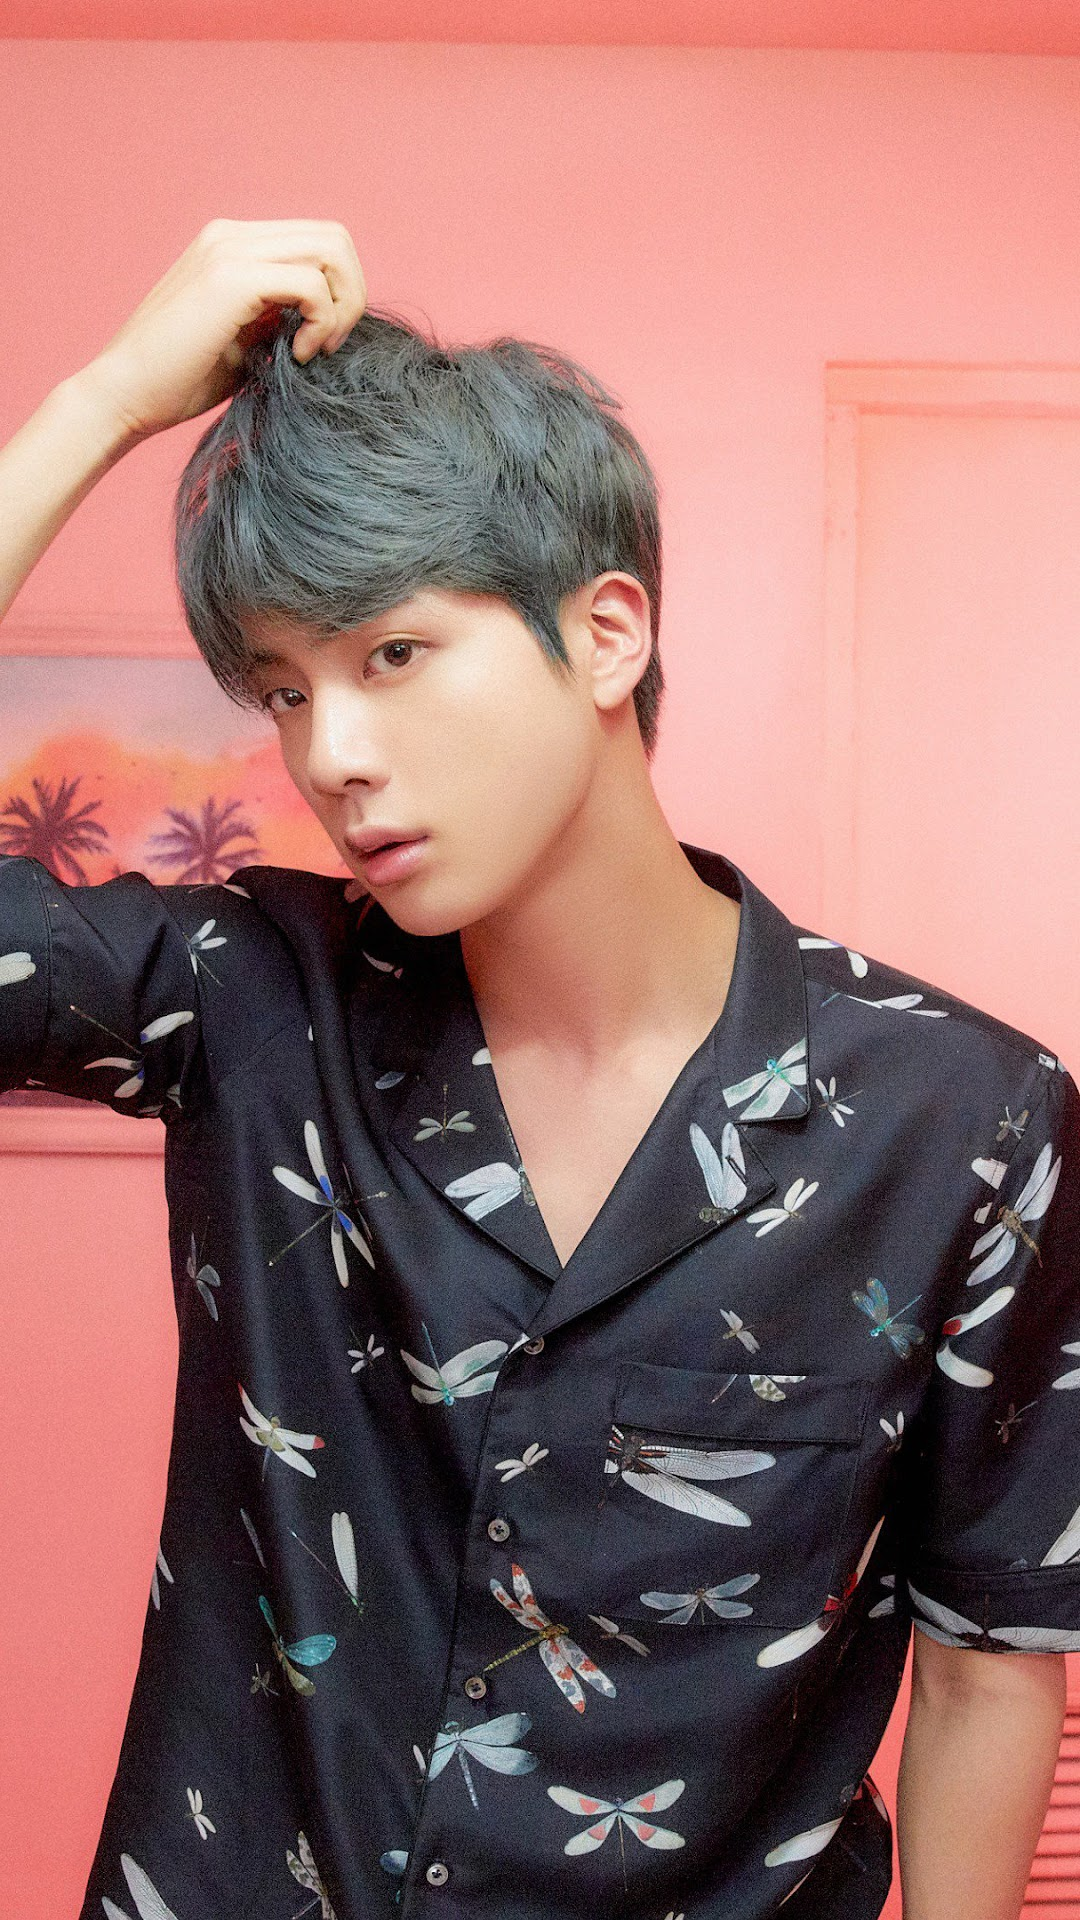 jin bts map of the soul persona uhdpaper.com 4K 16